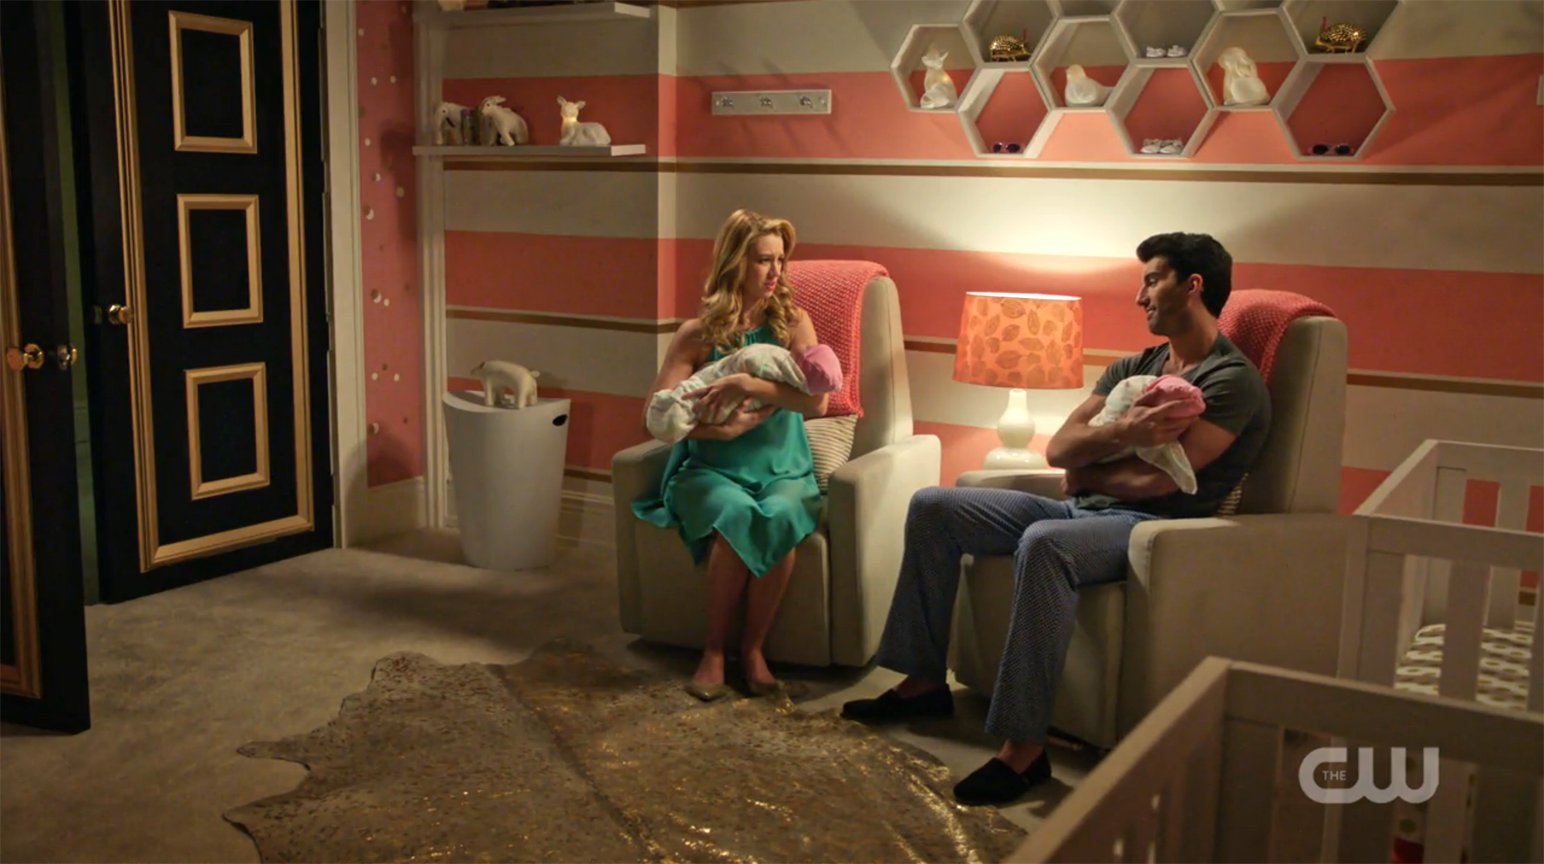 PETRA'S NURSERY - PRODUCTION STILL